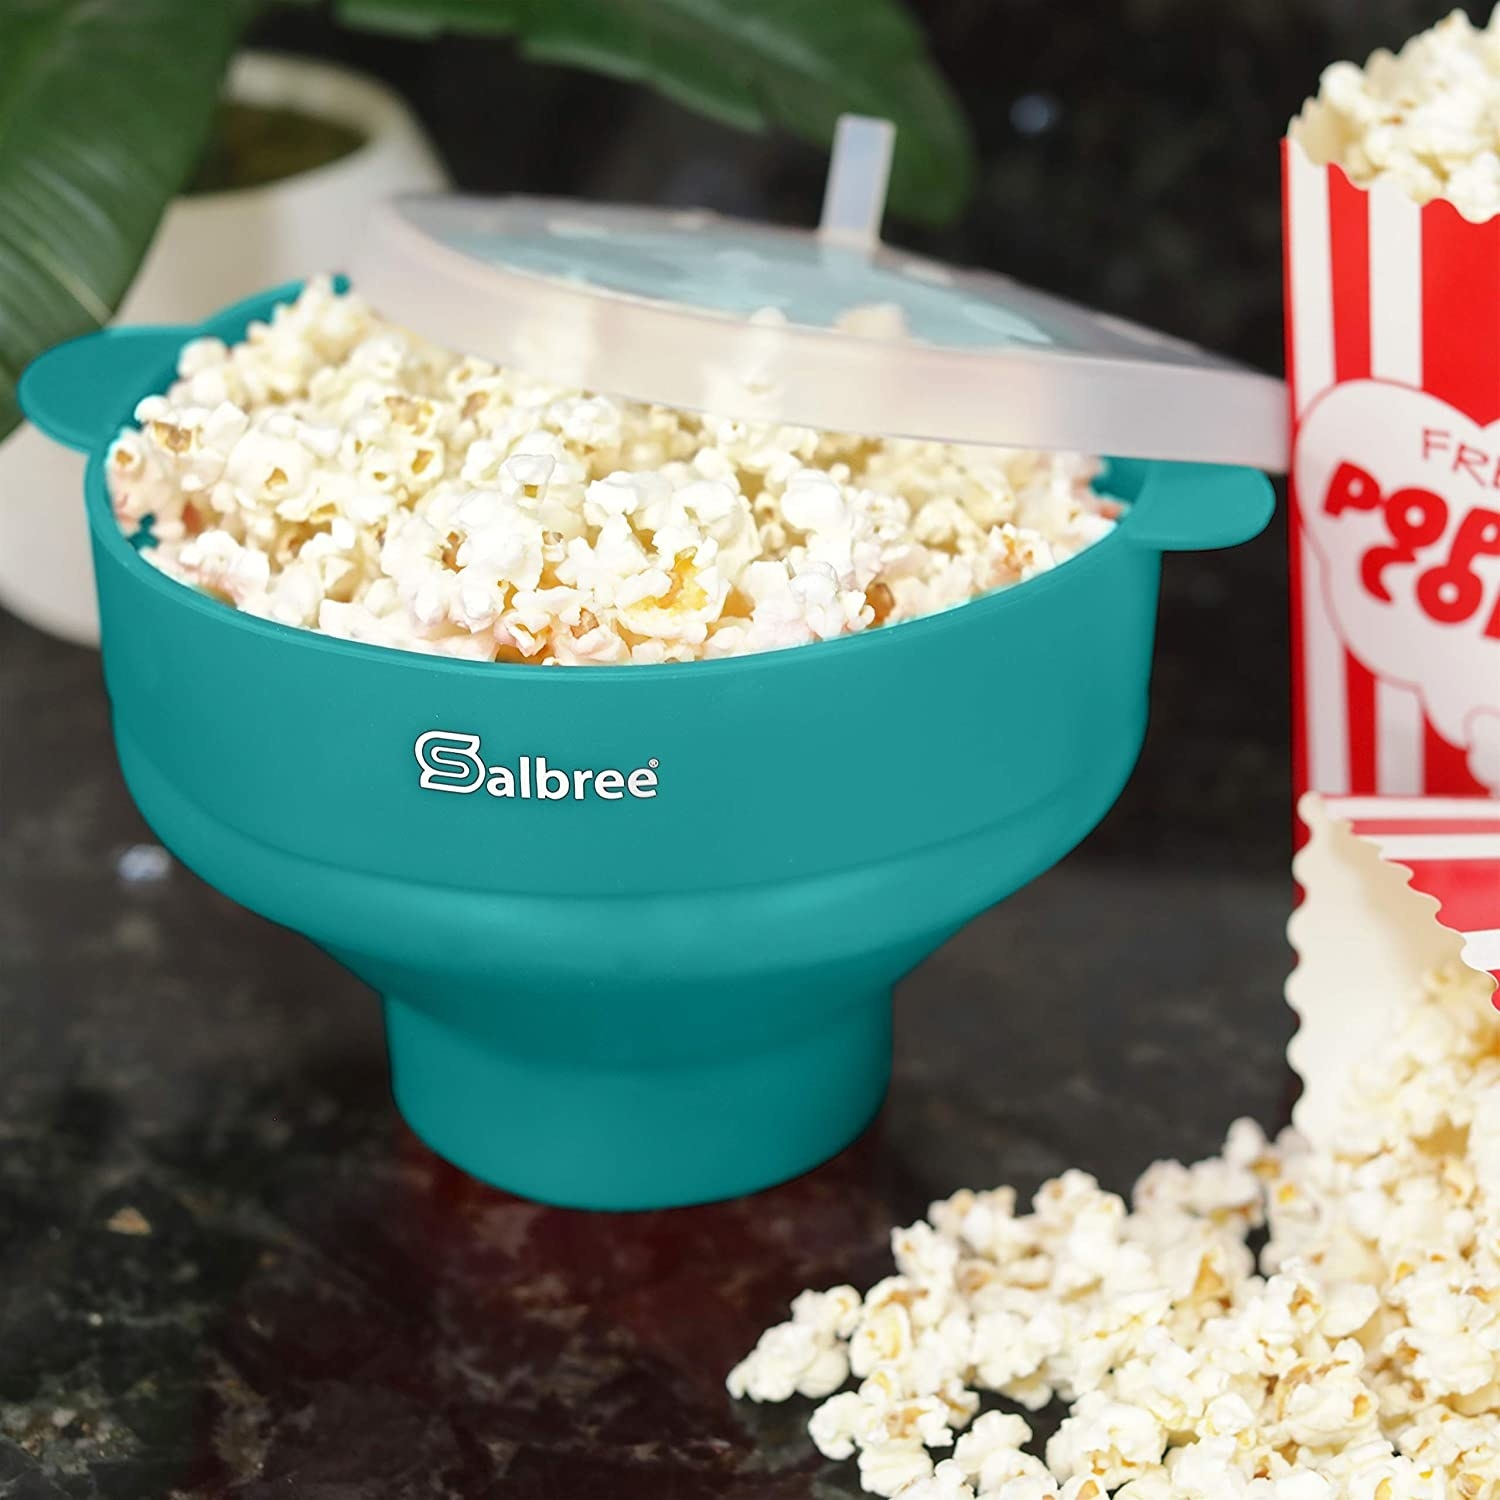 a blue silicone bowl with popcorn in it